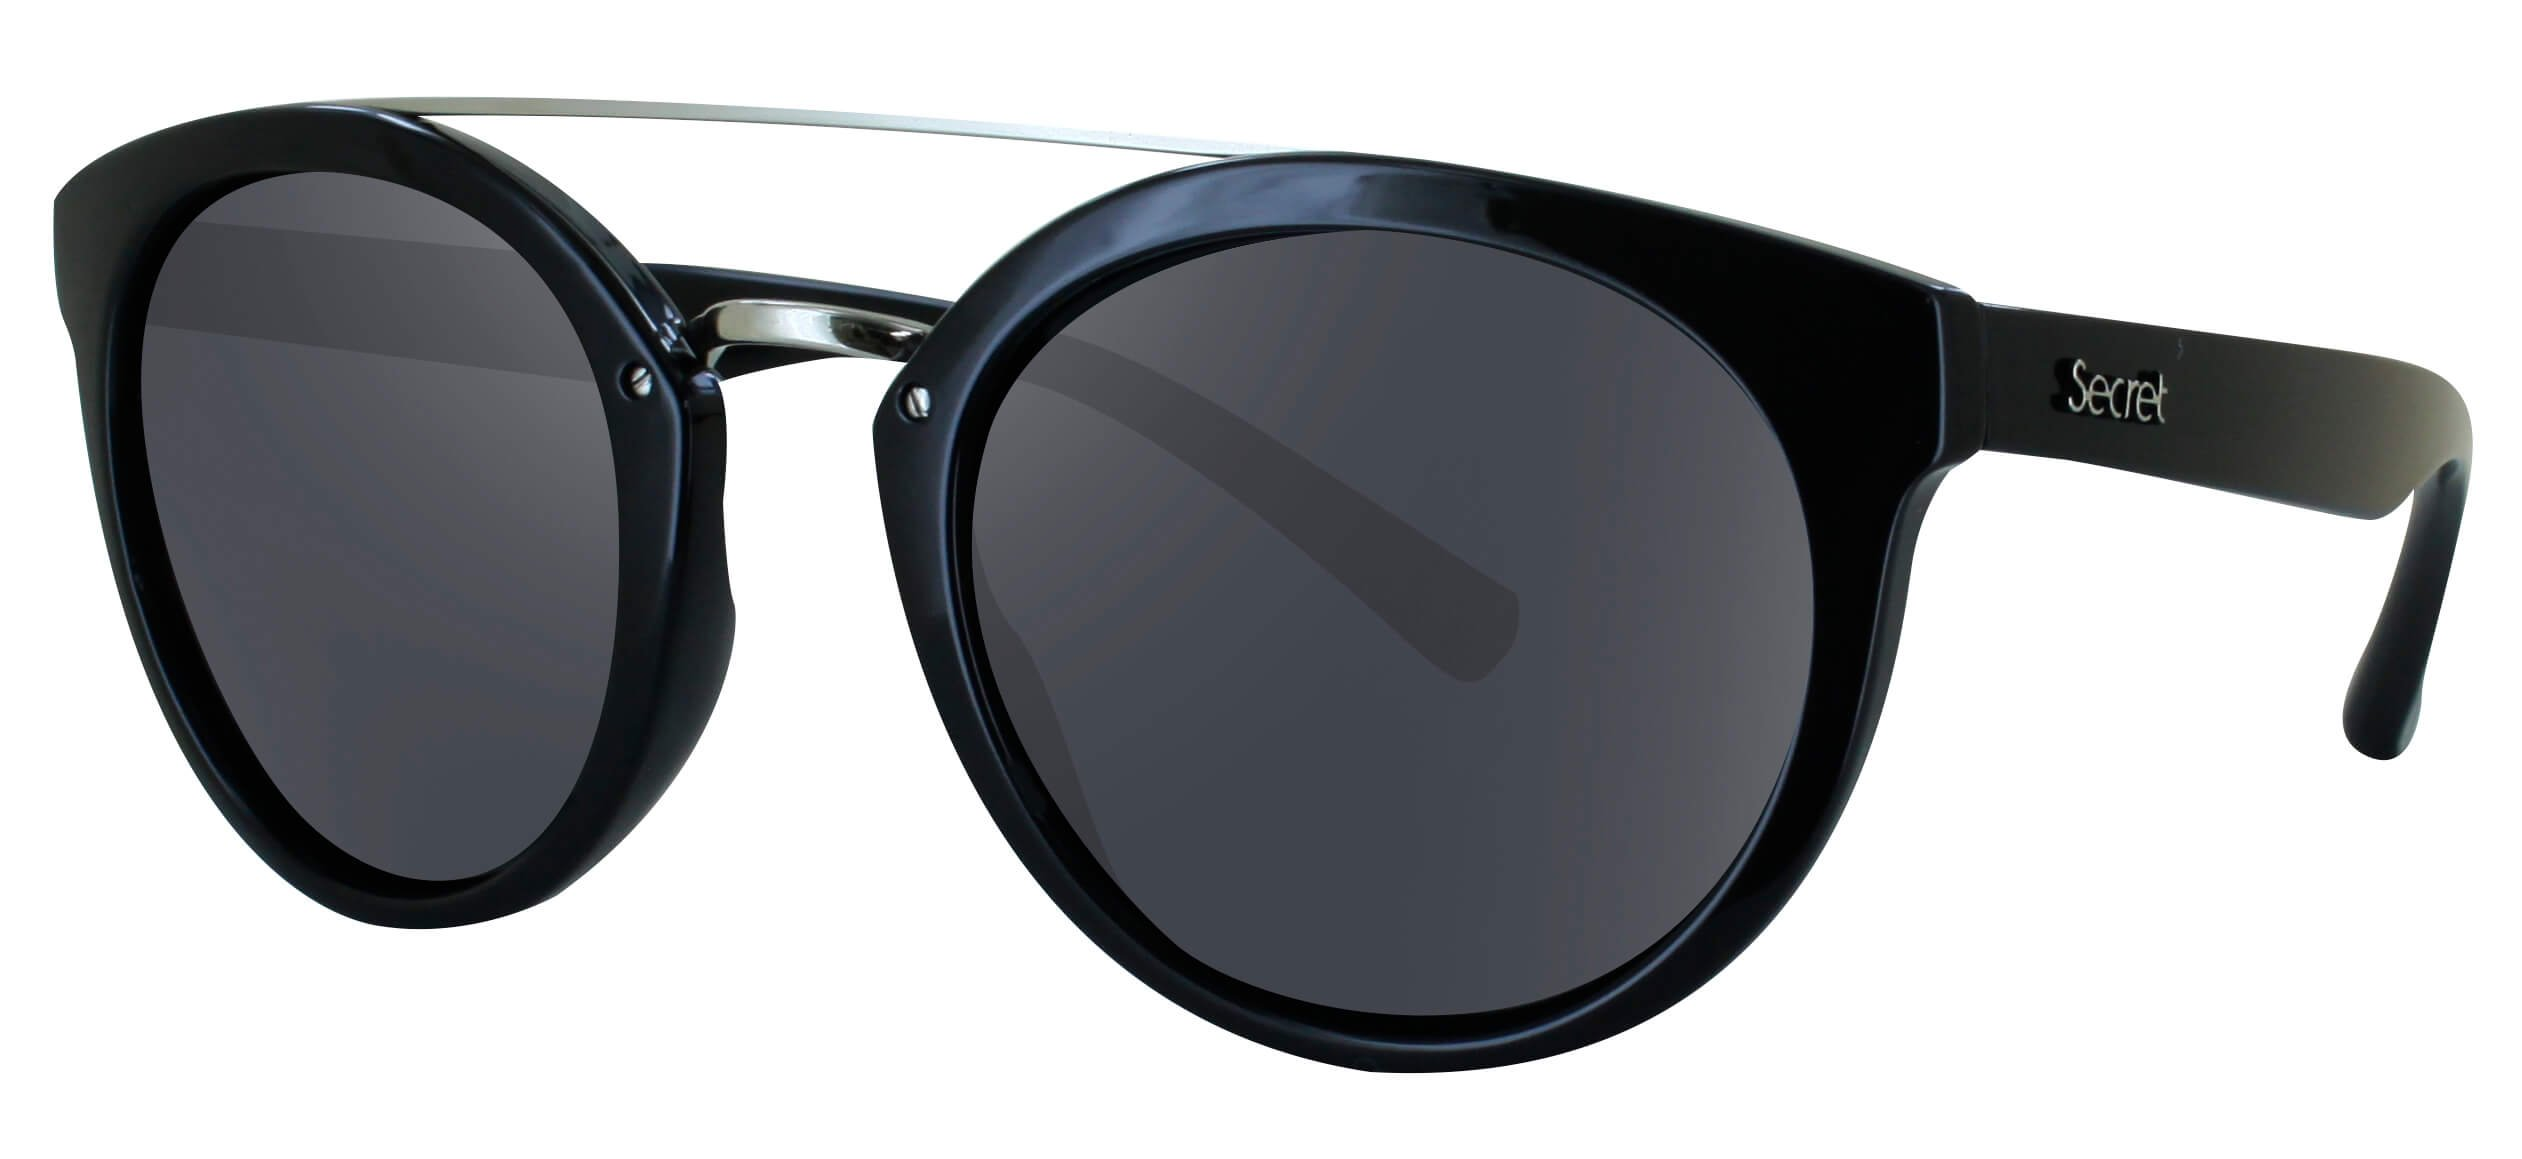 ÓC SECRET QUEENS GLOSS BLACK / POLARIZED GRAY